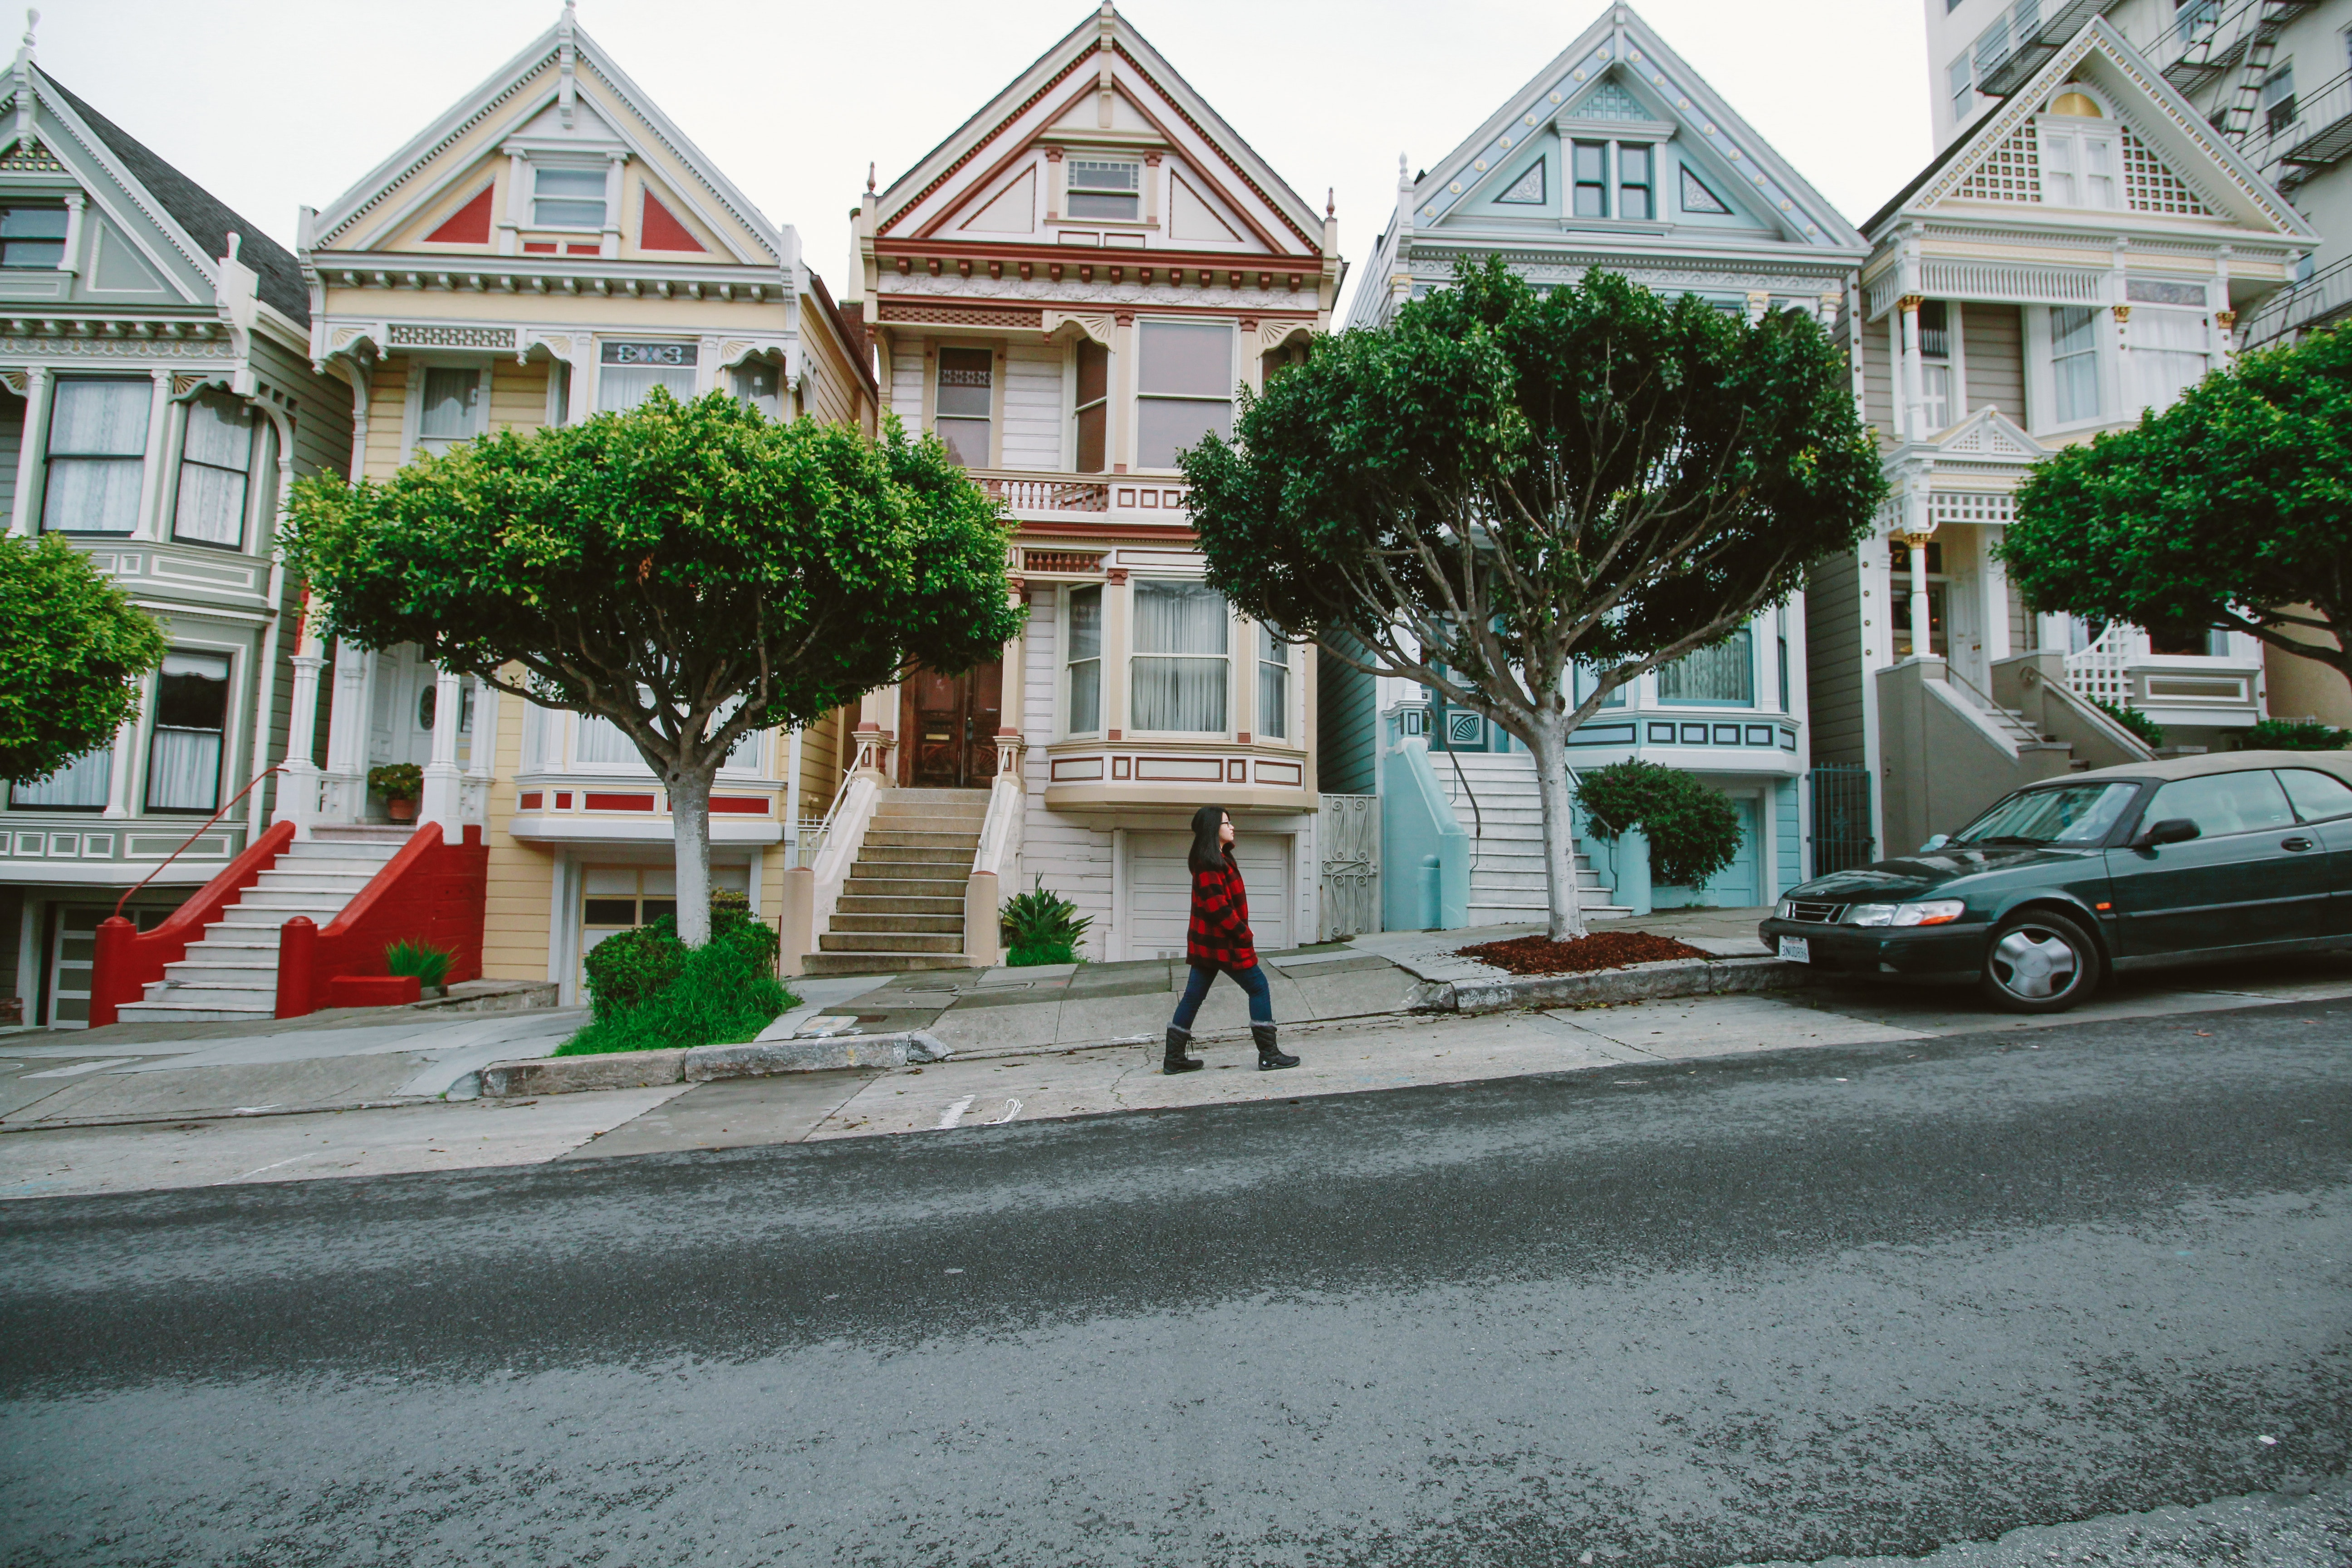 Woman walking toward black sedan parked in front of colorful houses photo